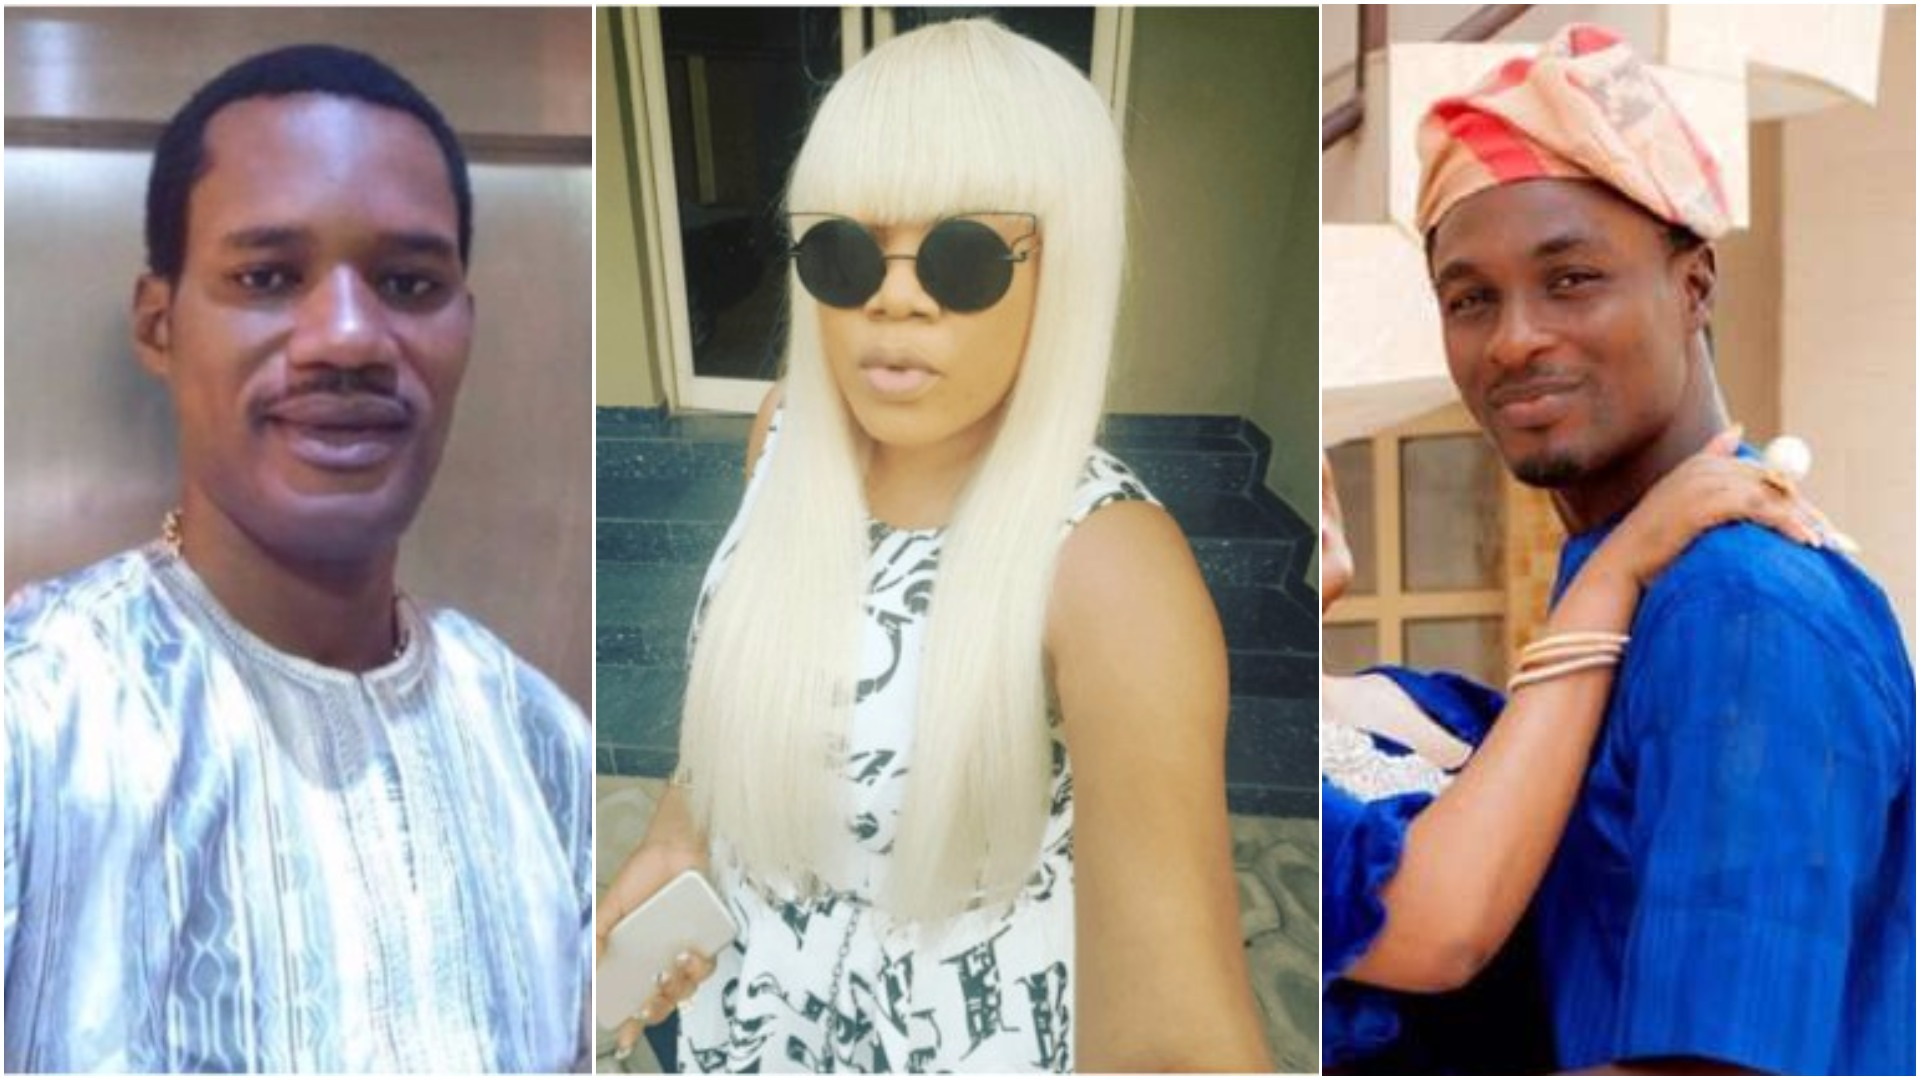 Toyin Aimakhu, love is NOT about luck but having sense and opening one's eyes